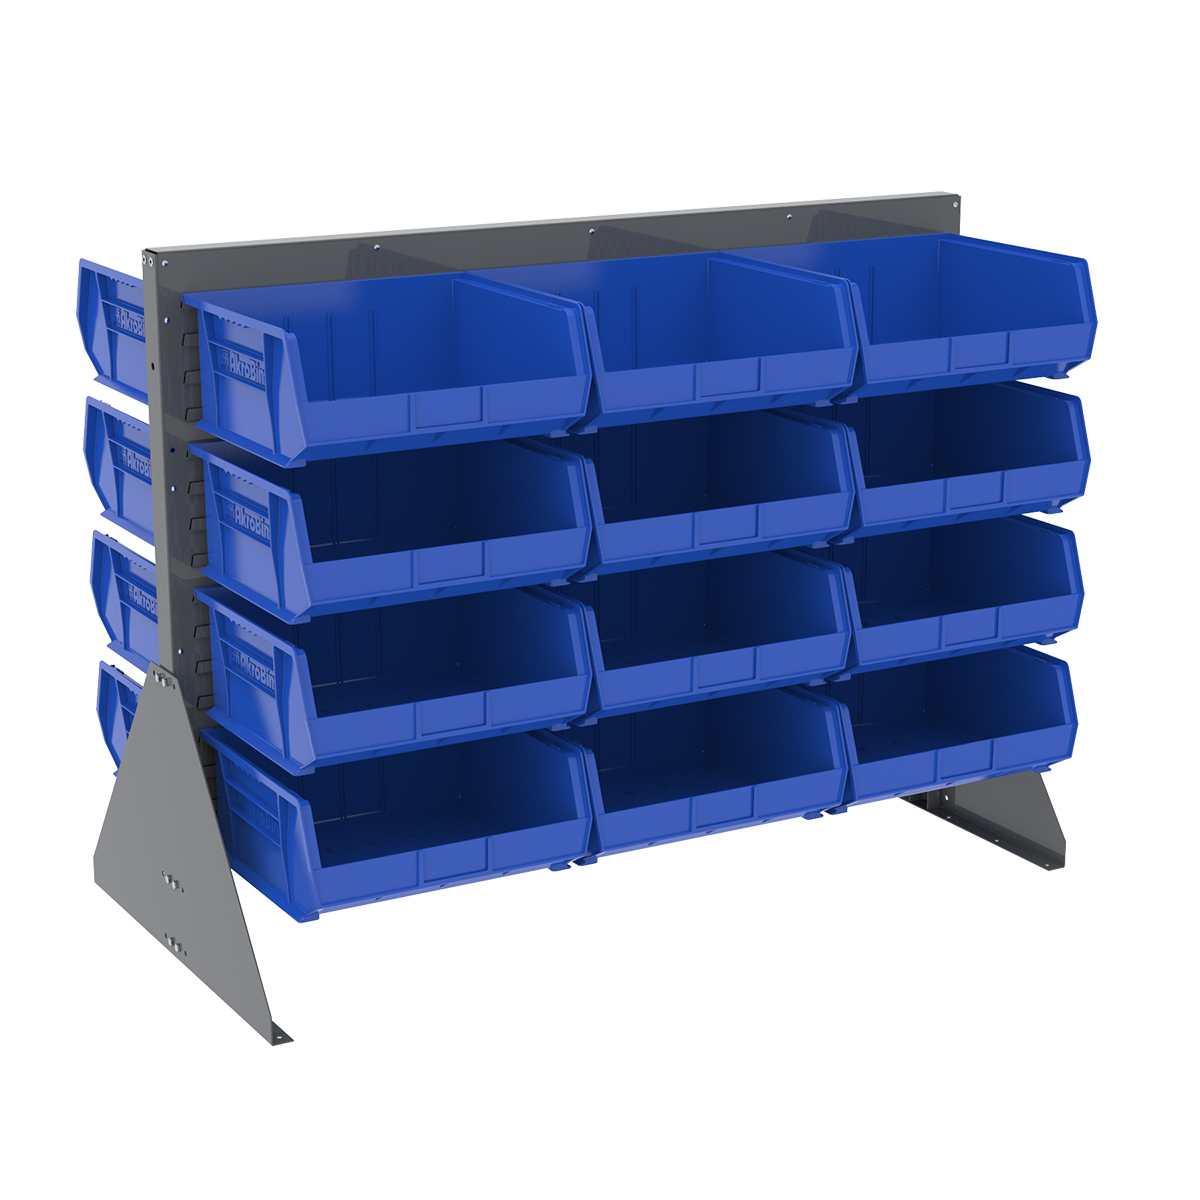 Item DISCONTINUED by Manufacturer.  Low Profile Floor Rack, 2-Sided w/ 36 AkroBins, Gray/Blue (30607GY250B).  This item sold in carton quantities of 1.